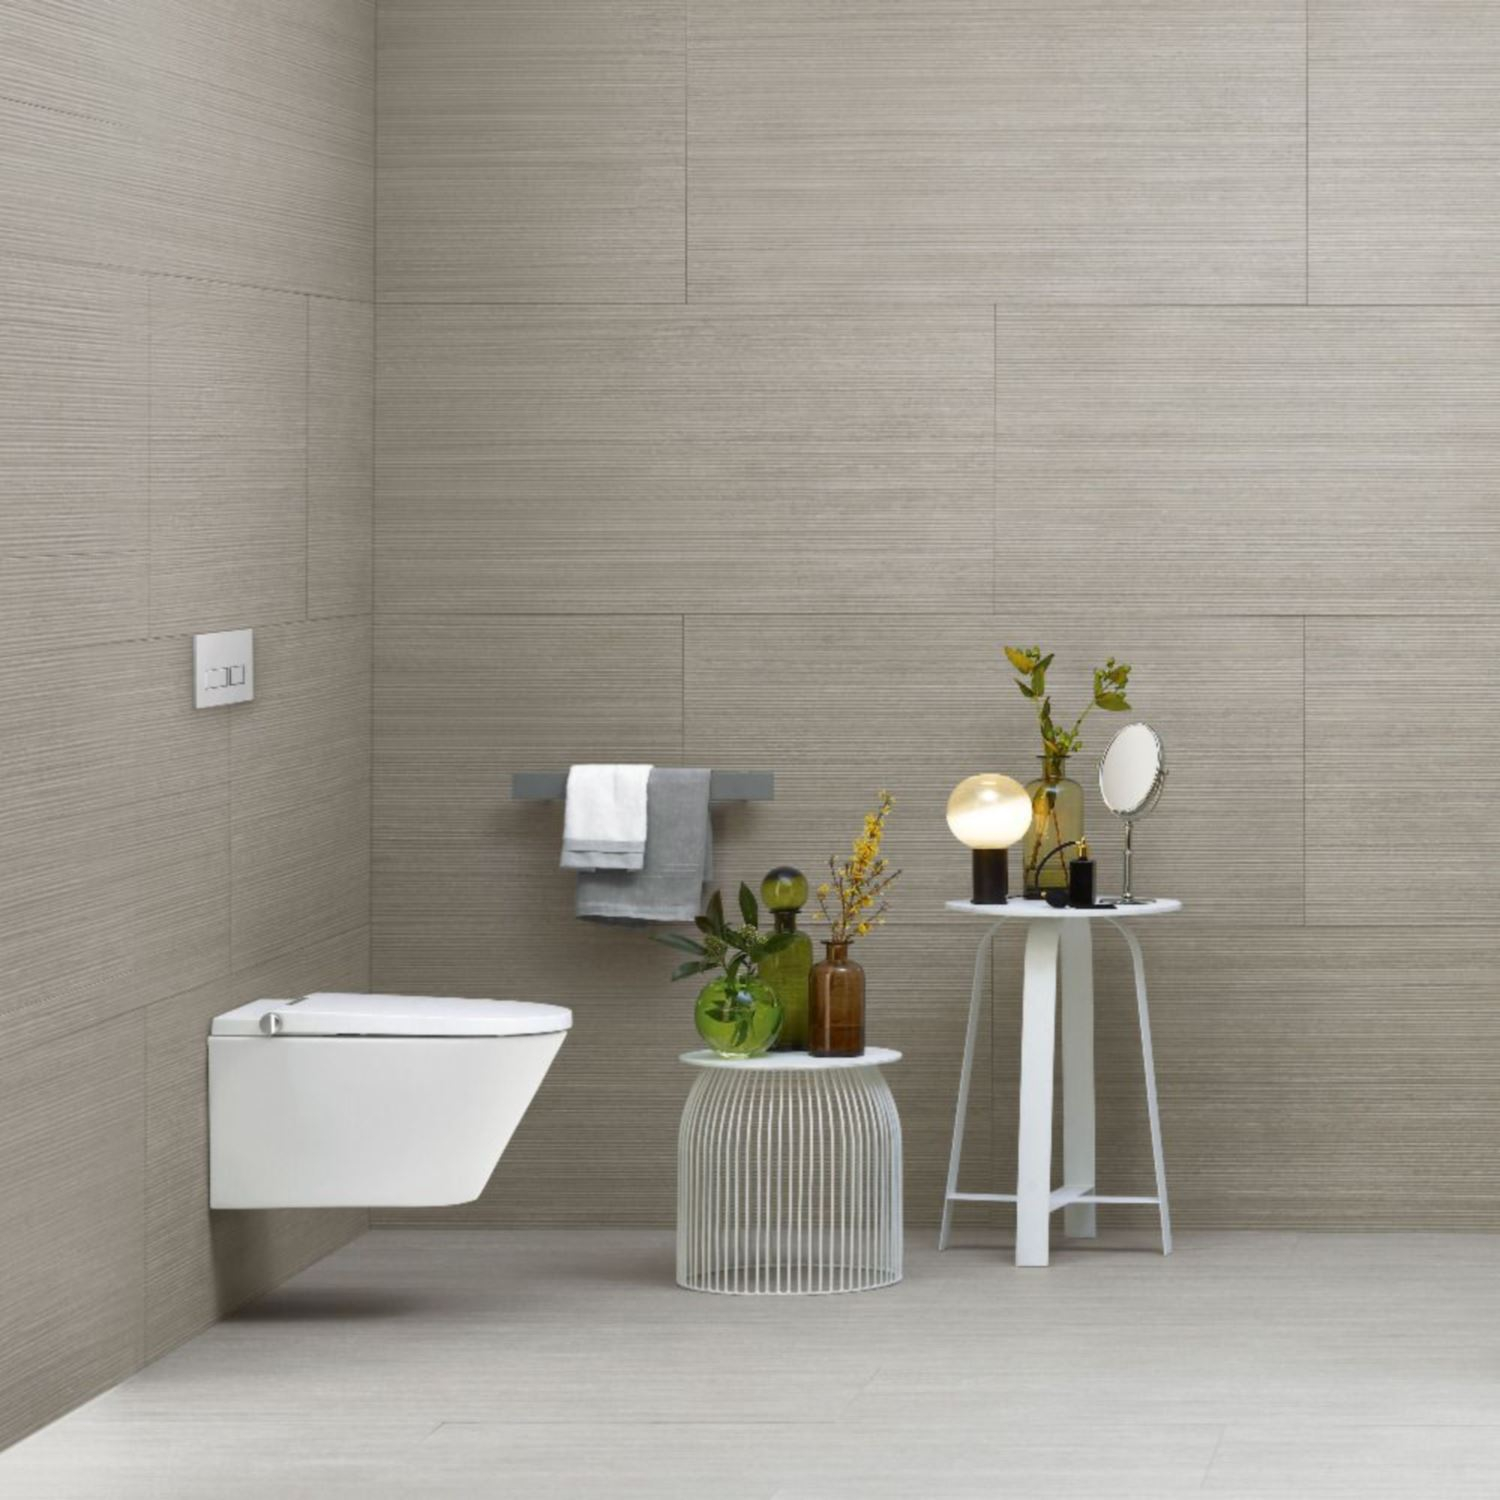 douche wc axent one rimless wit inclusief zitting